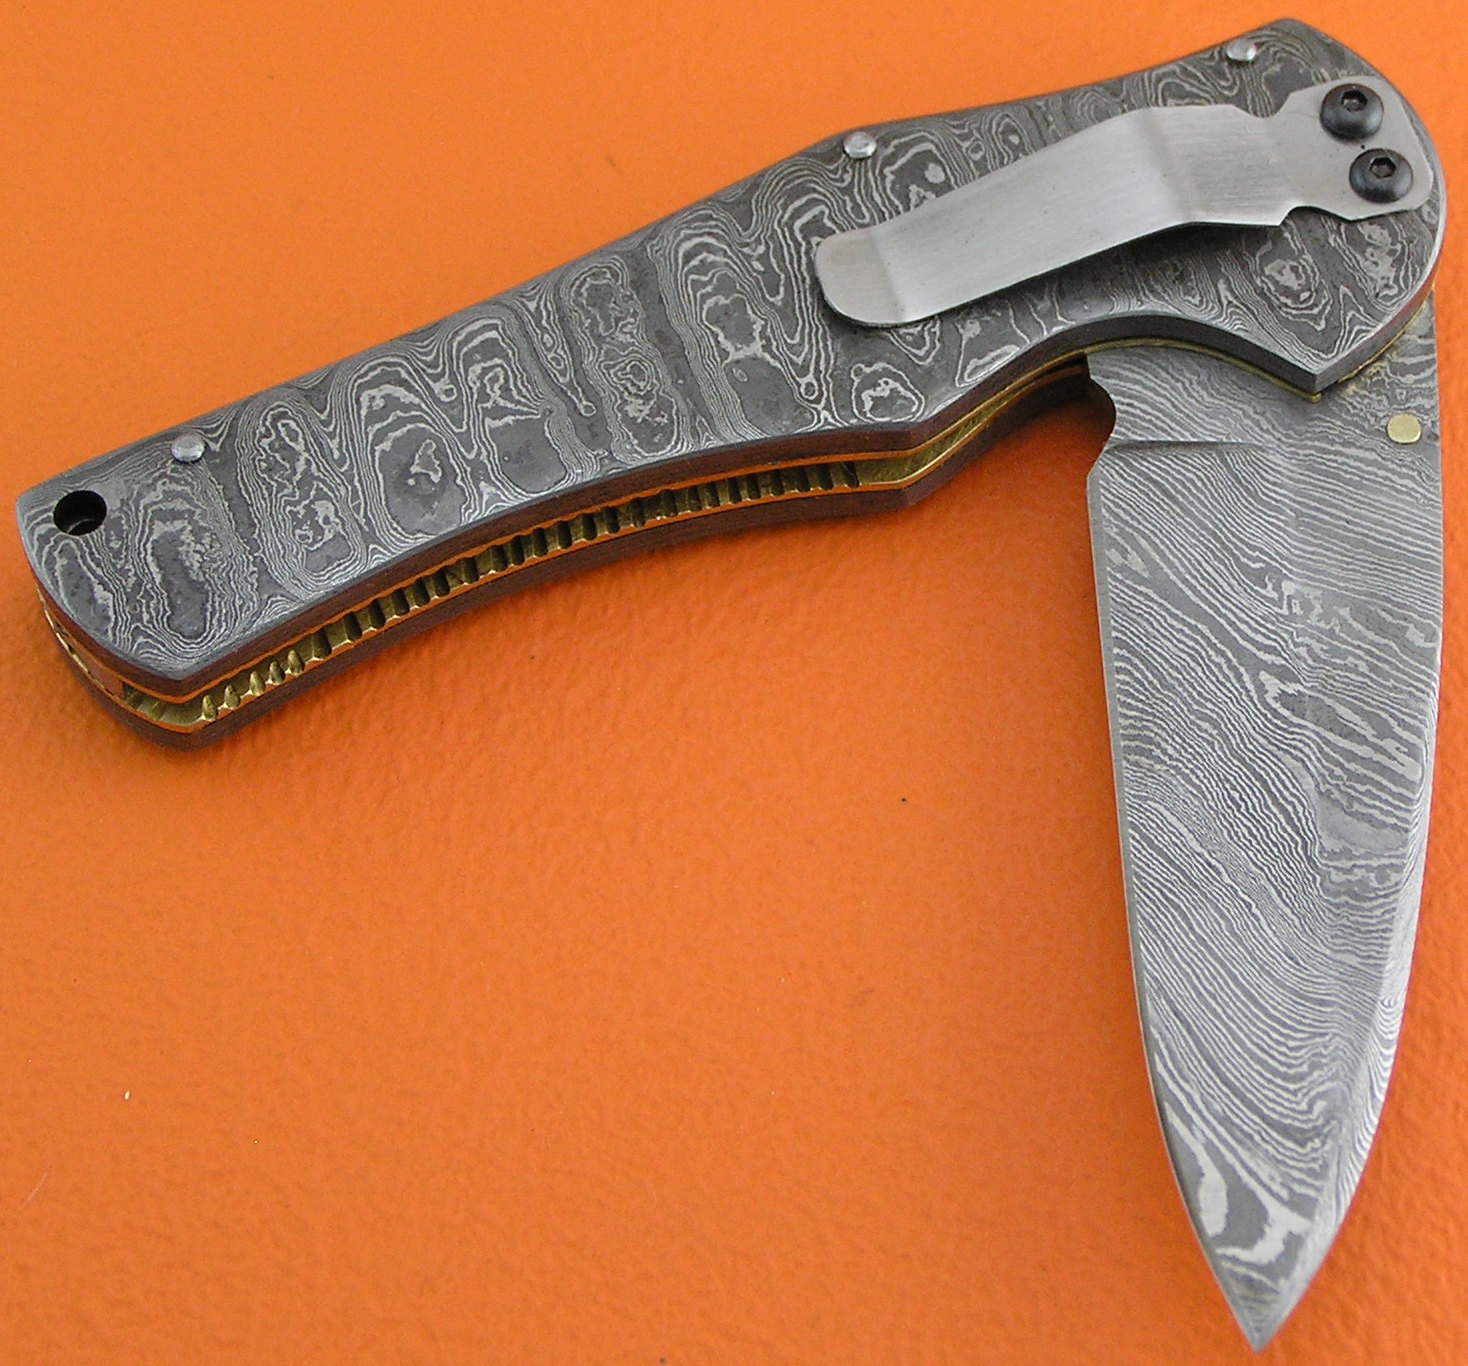 ... Damascus Folding Knife Belt Clip Handle With Leather Sheaths 1935.    e310ae1eaef4